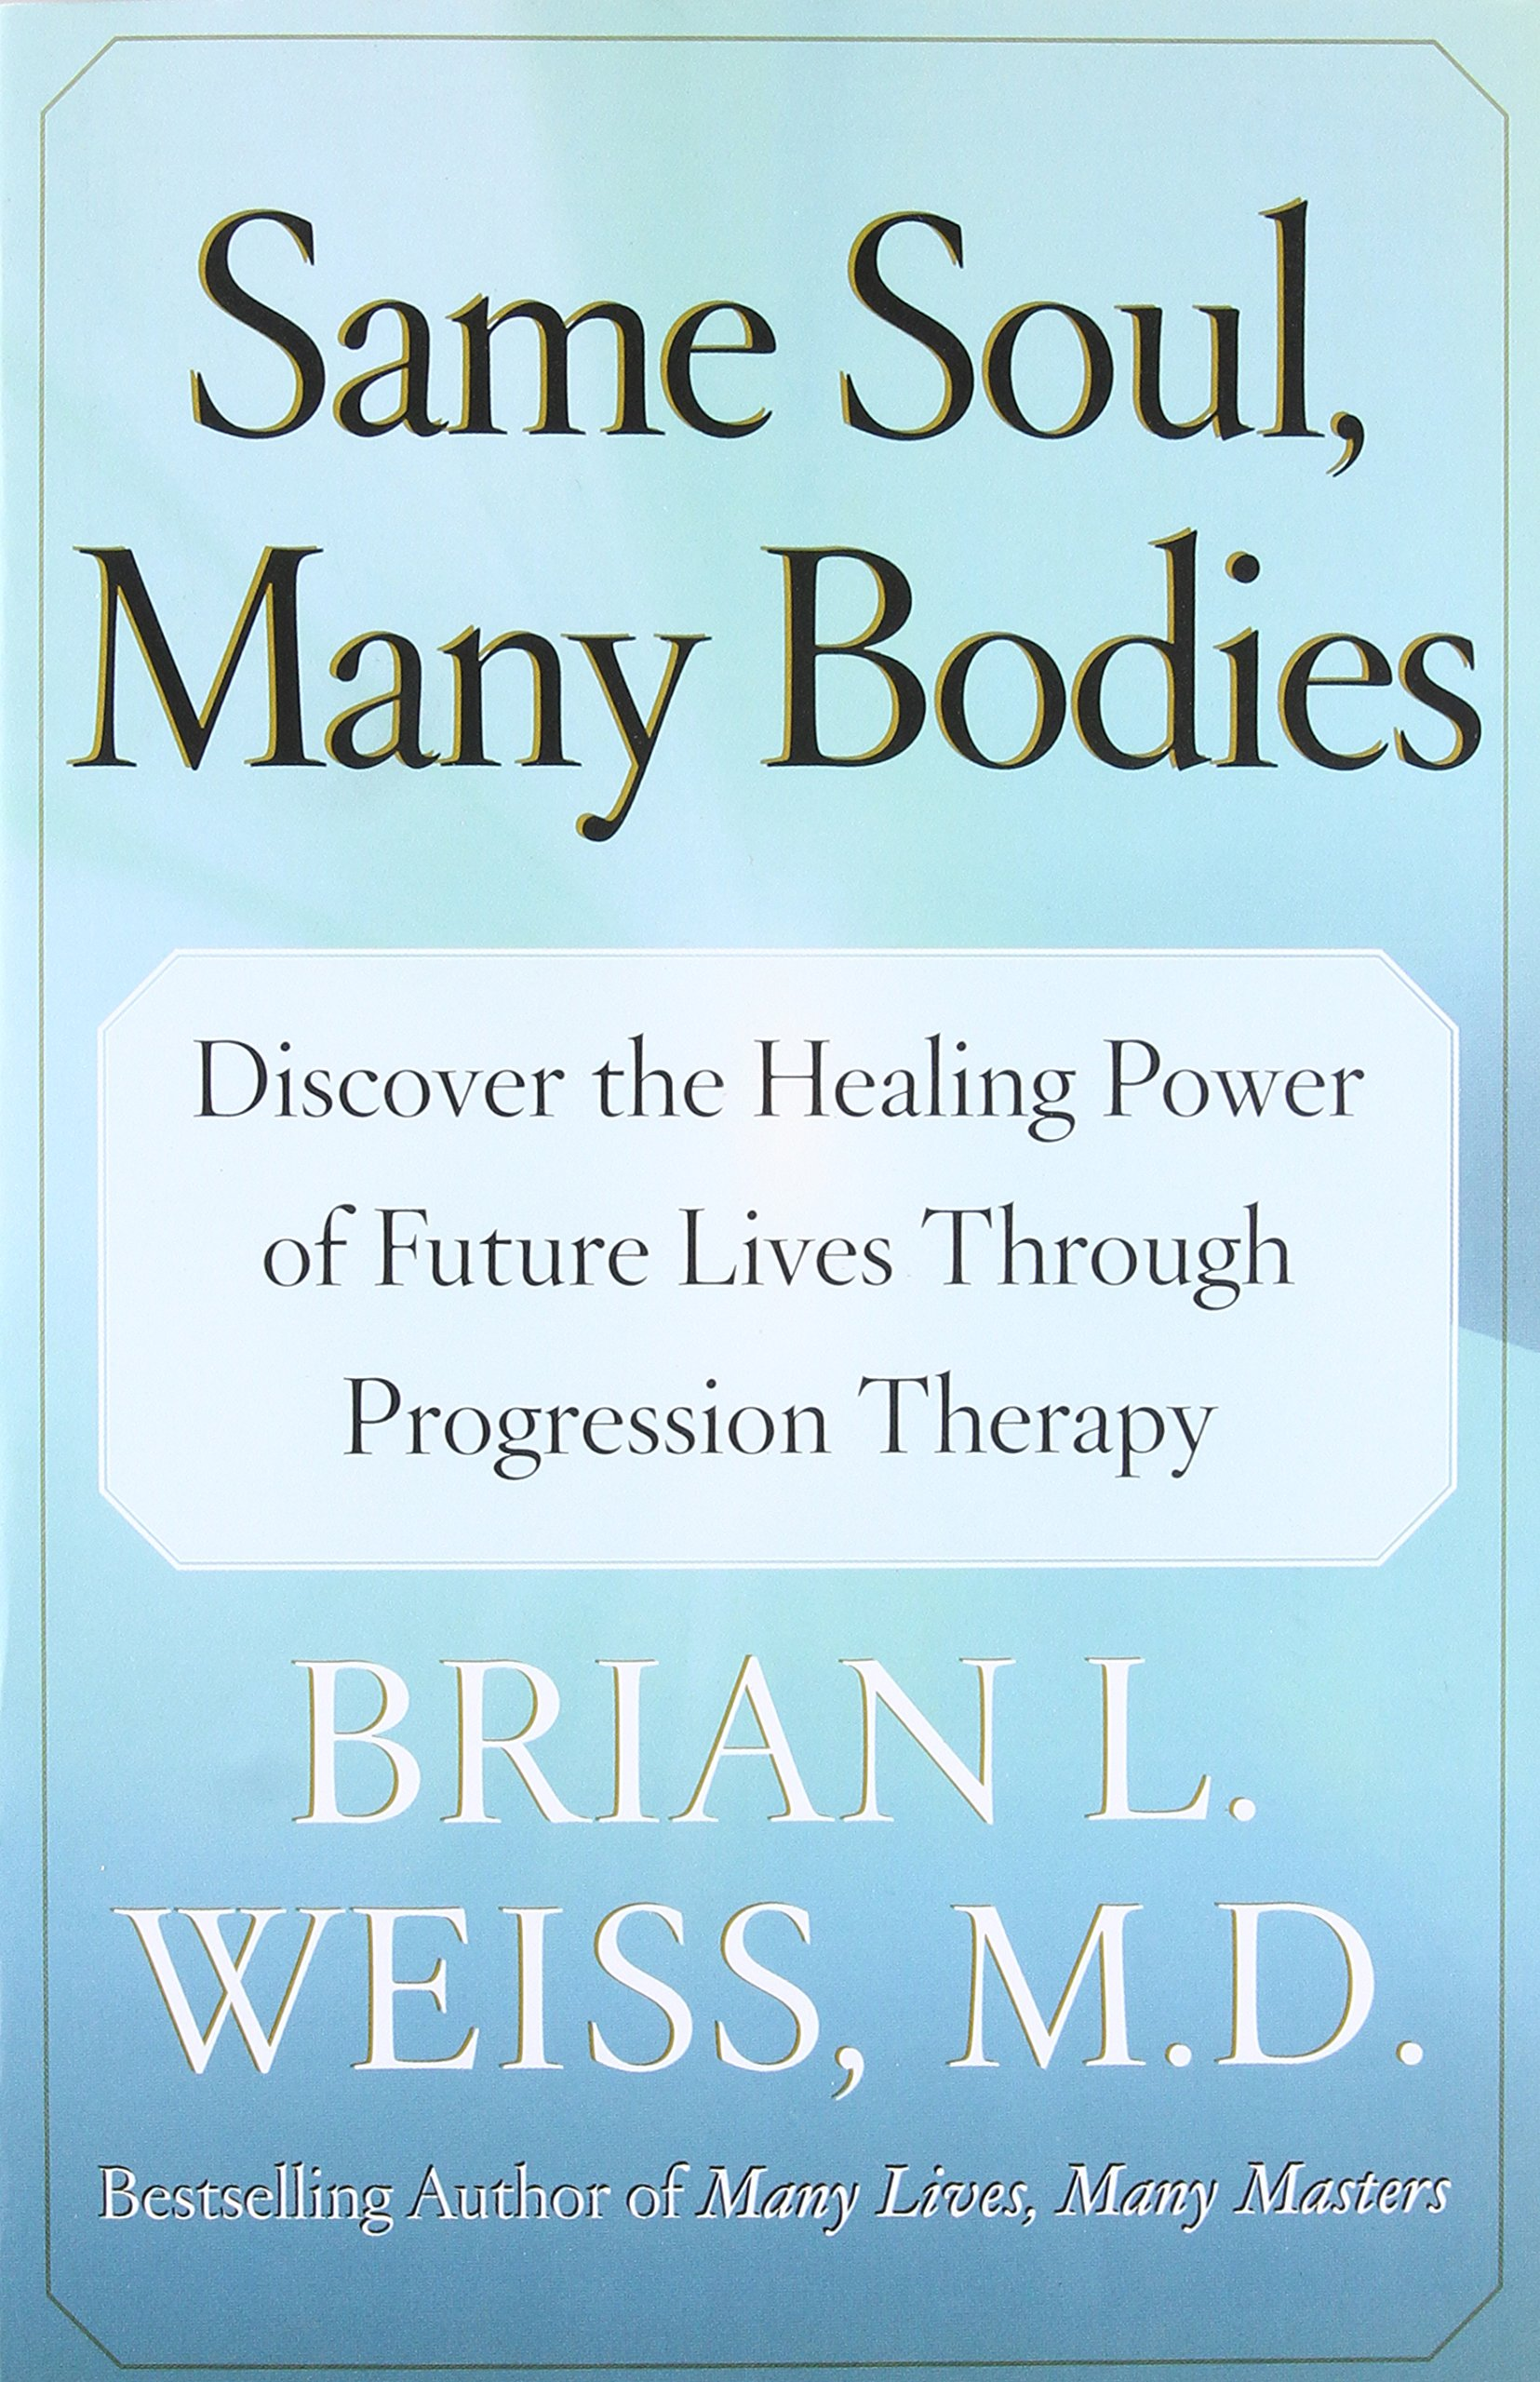 Same soul many bodies discover the healing power of future lives same soul many bodies discover the healing power of future lives through progression therapy amazon m d brian l weiss m d 8601405245069 books fandeluxe Image collections